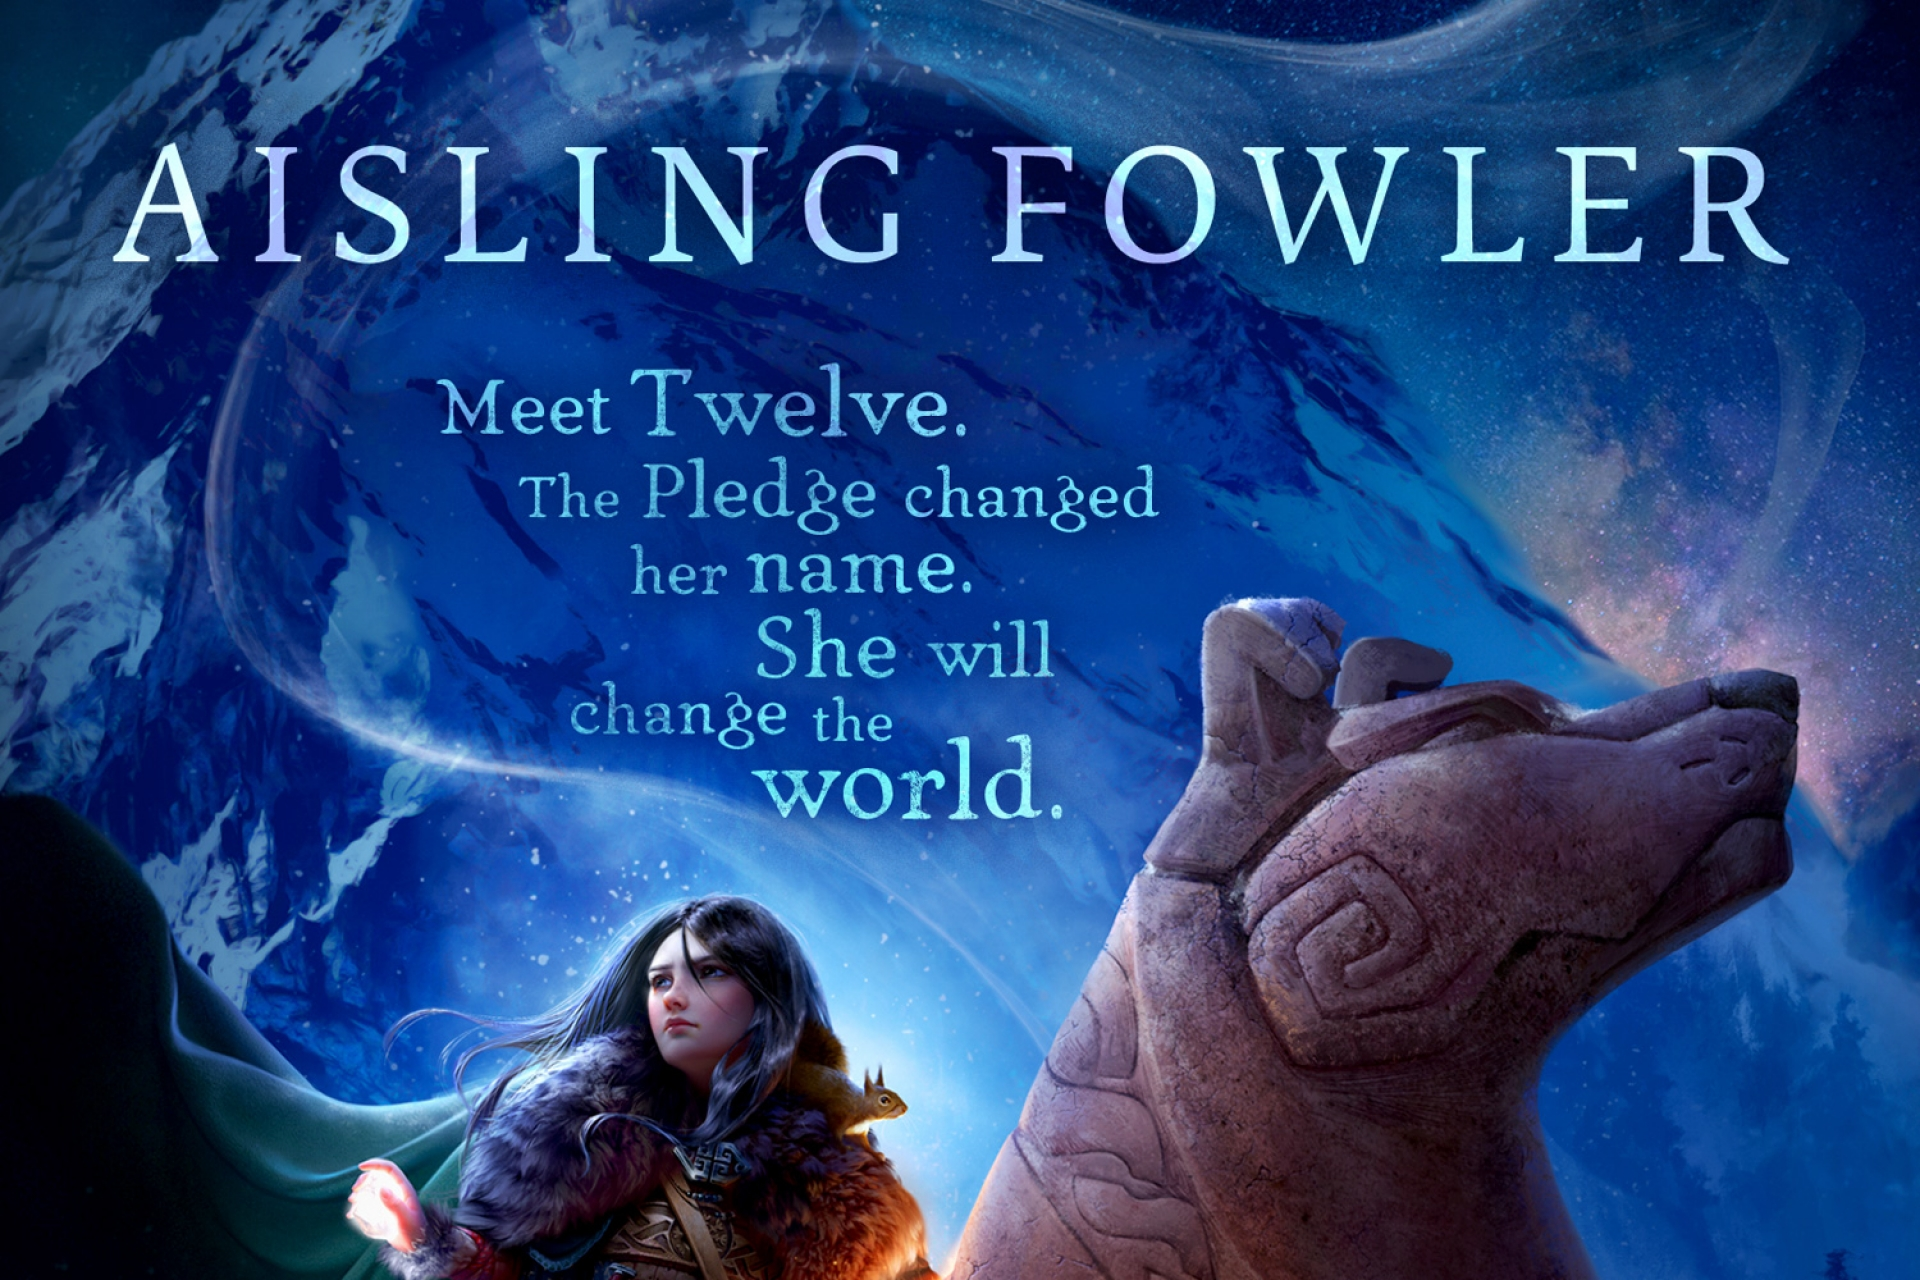 Debut Author of the Month, Aisling Fowler